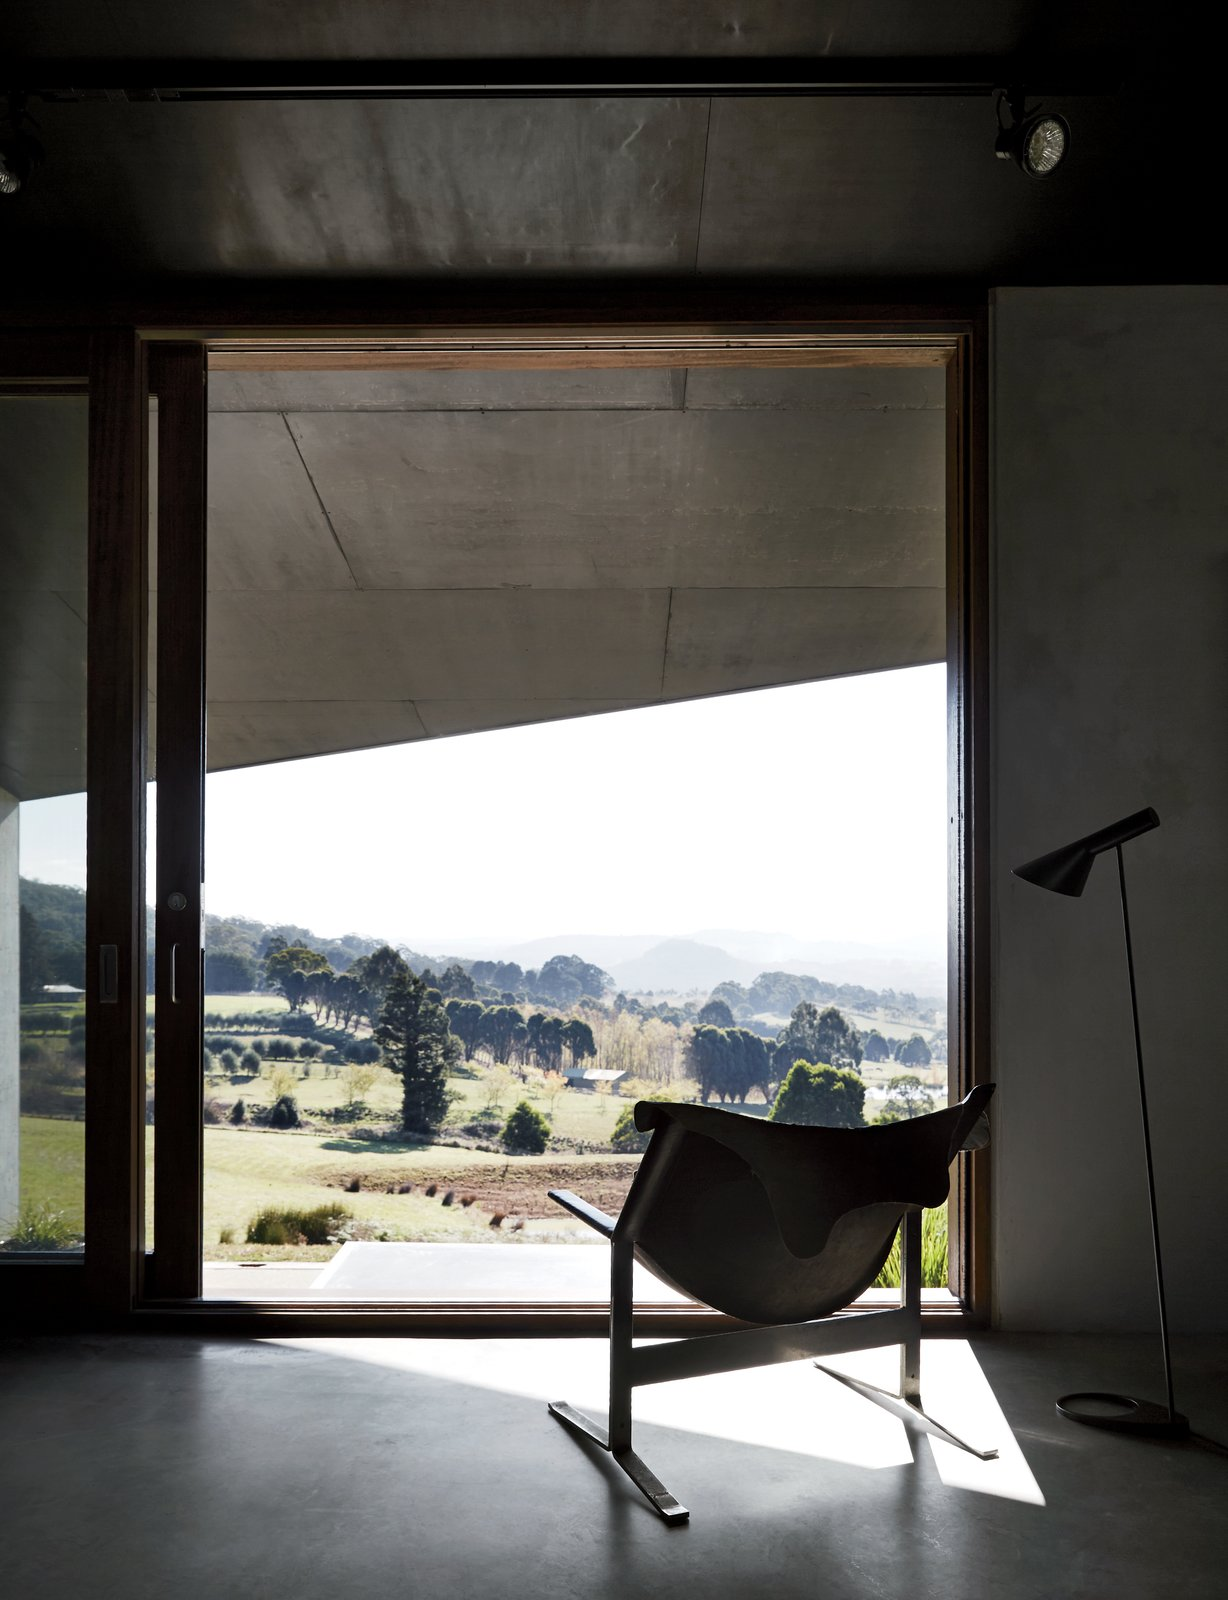 """A Clement Meadmore Sling chair provides a favorite vantage point for sipping coffee while looking out at Hanging Rock. """"It's always hard to leave and return to the city,"""" Titania says. Tagged: Living Room, Chair, and Floor Lighting.  Views by DAVE MORIN from Richly Furnished Home Frames Striking Landscape Views"""